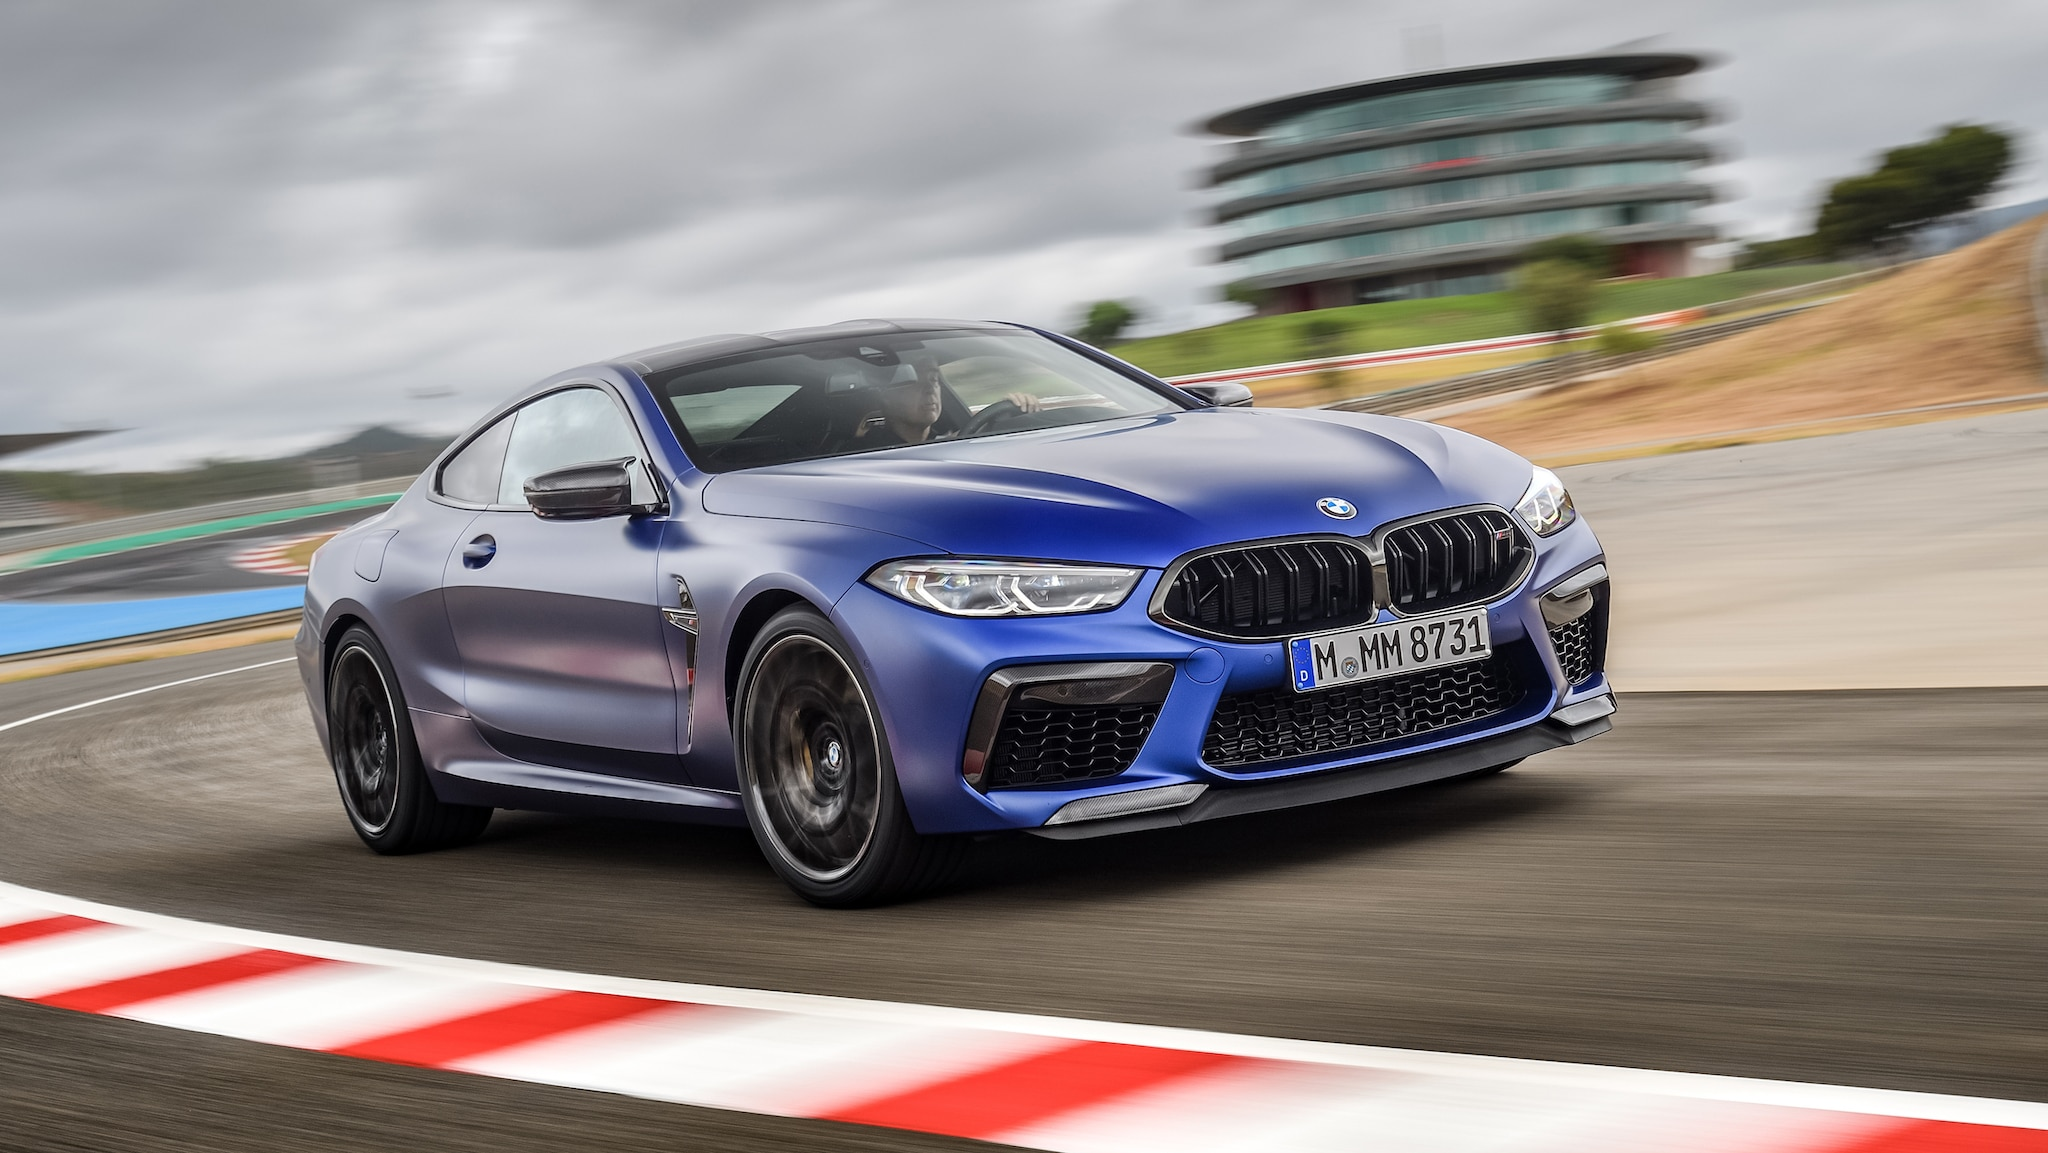 2020 BMW M8 Coupe/Convertible First Drive Review: They're Badass | Automobile Magazine